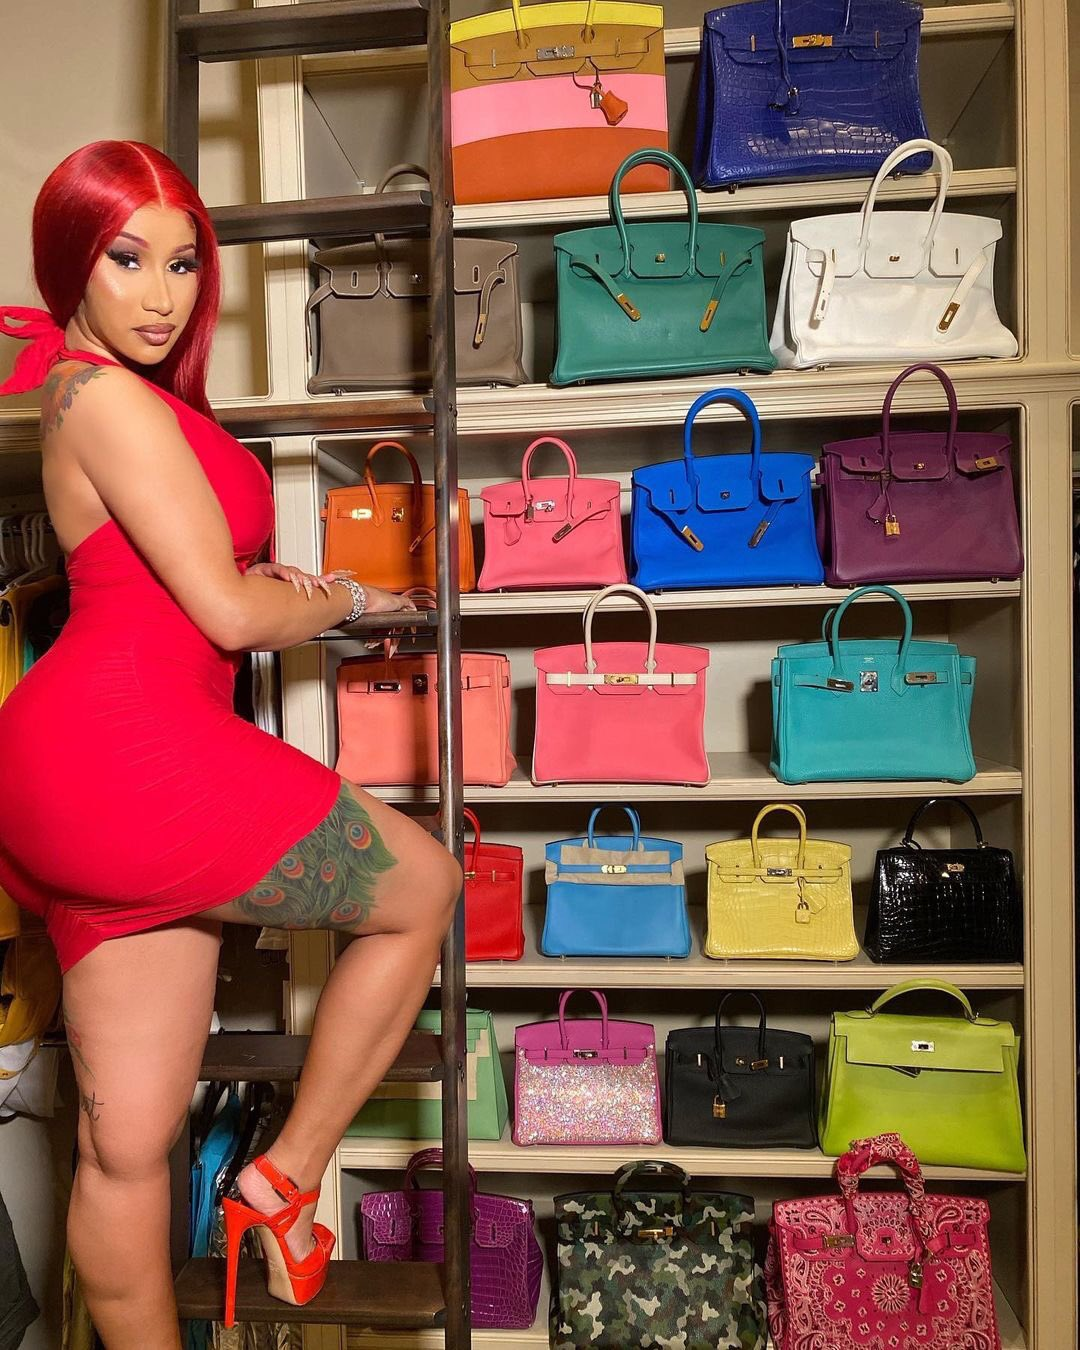 cardi-b-rocks-red-dress-shows-her-birkin-collection